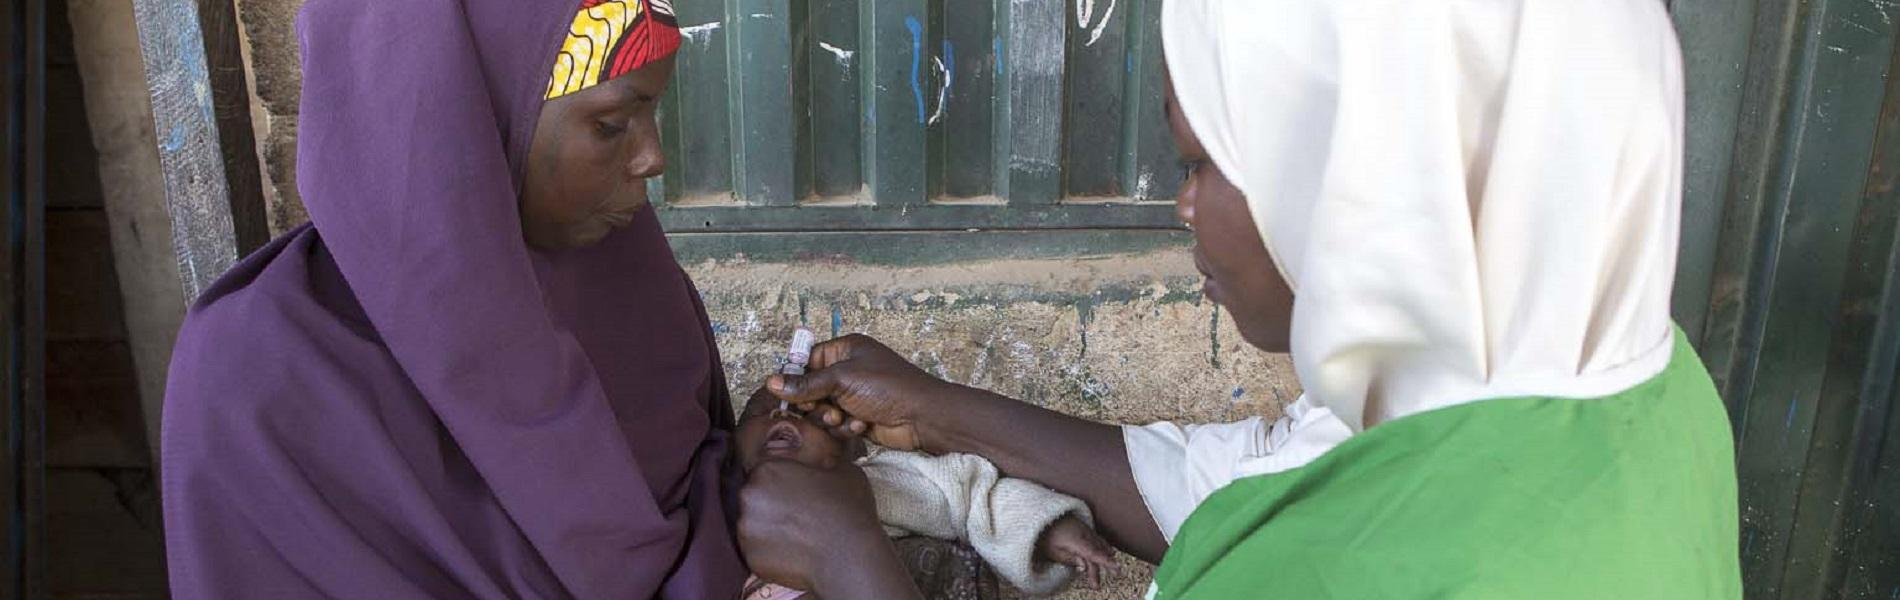 Frontline workers in Nigeria break down gender related barriers to reach children with vaccines